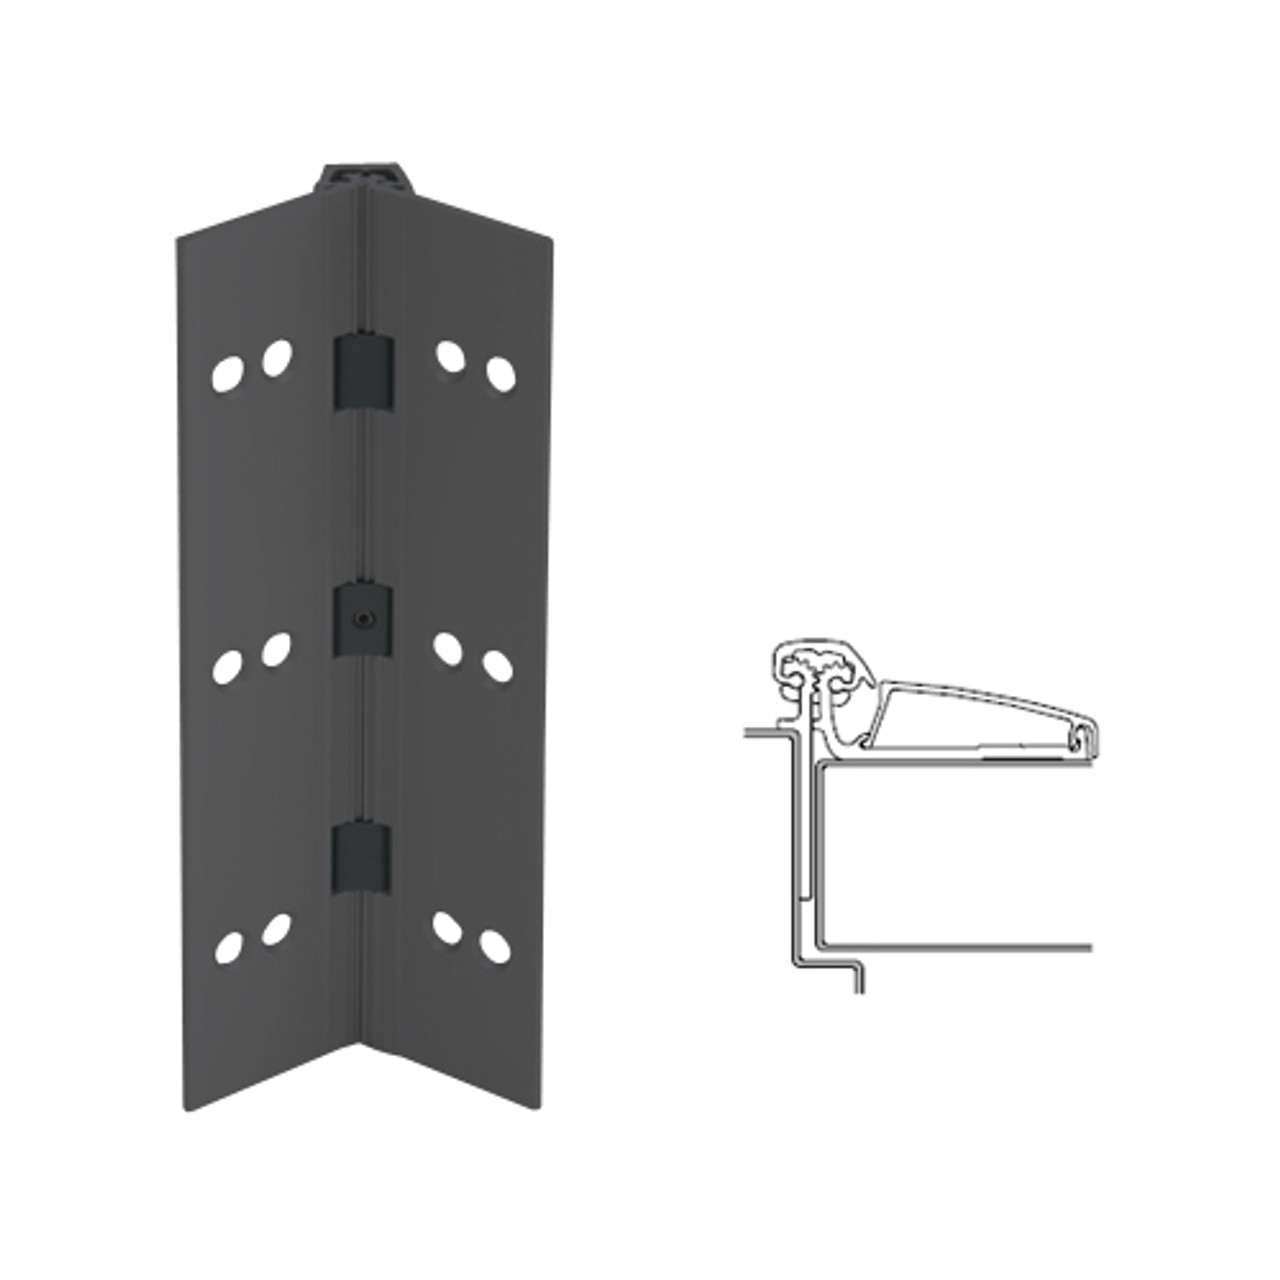 045XY-315AN-85-TEKWD IVES Adjustable Half Surface Continuous Geared Hinges with Wood Screws in Anodized Black